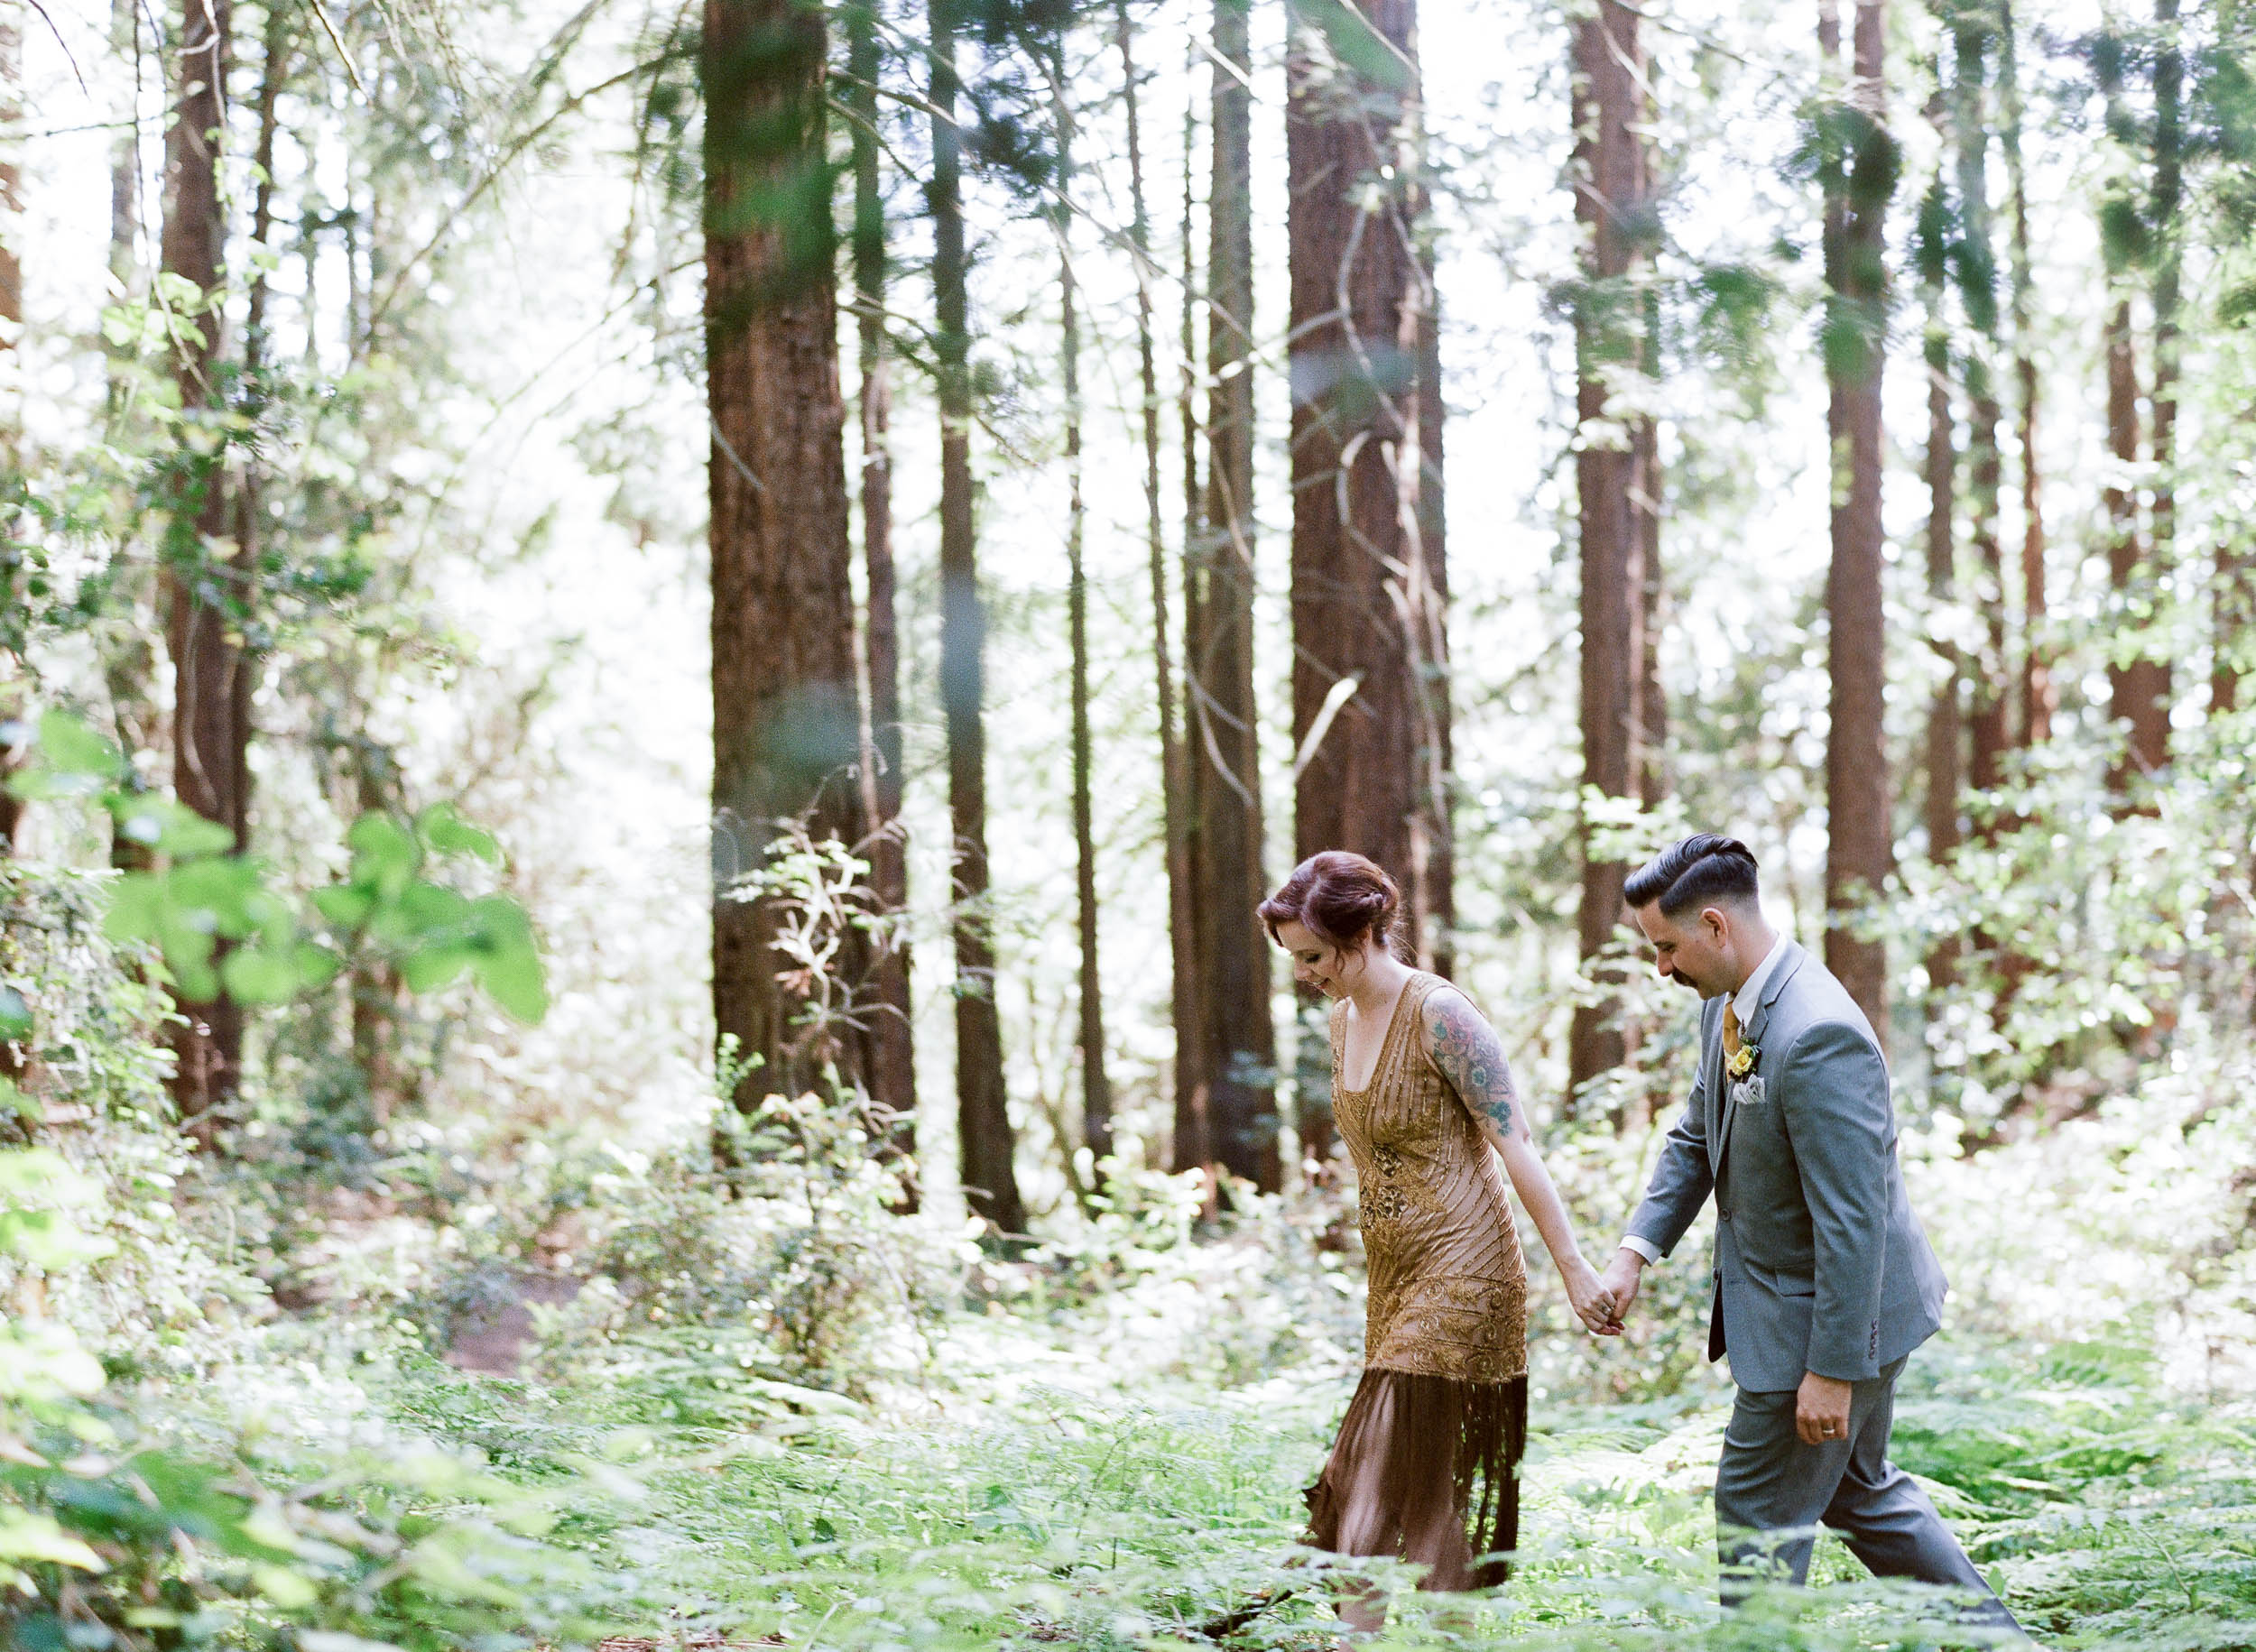 050418_J+S_Oakland Redwoods Elopement_Buena Lane Photography_P4_034.jpg